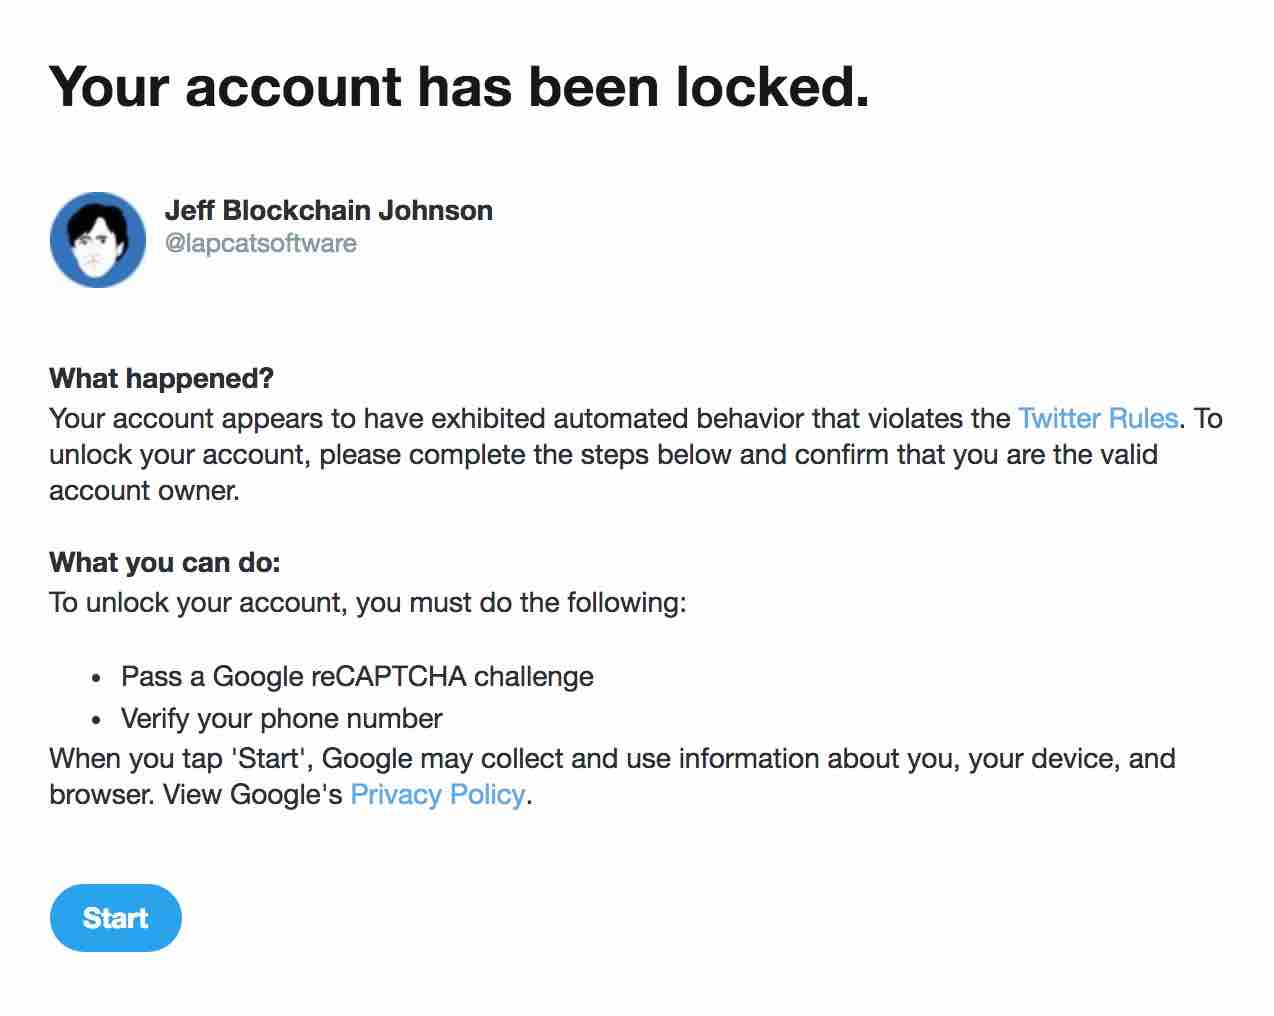 My Twitter account has been locked